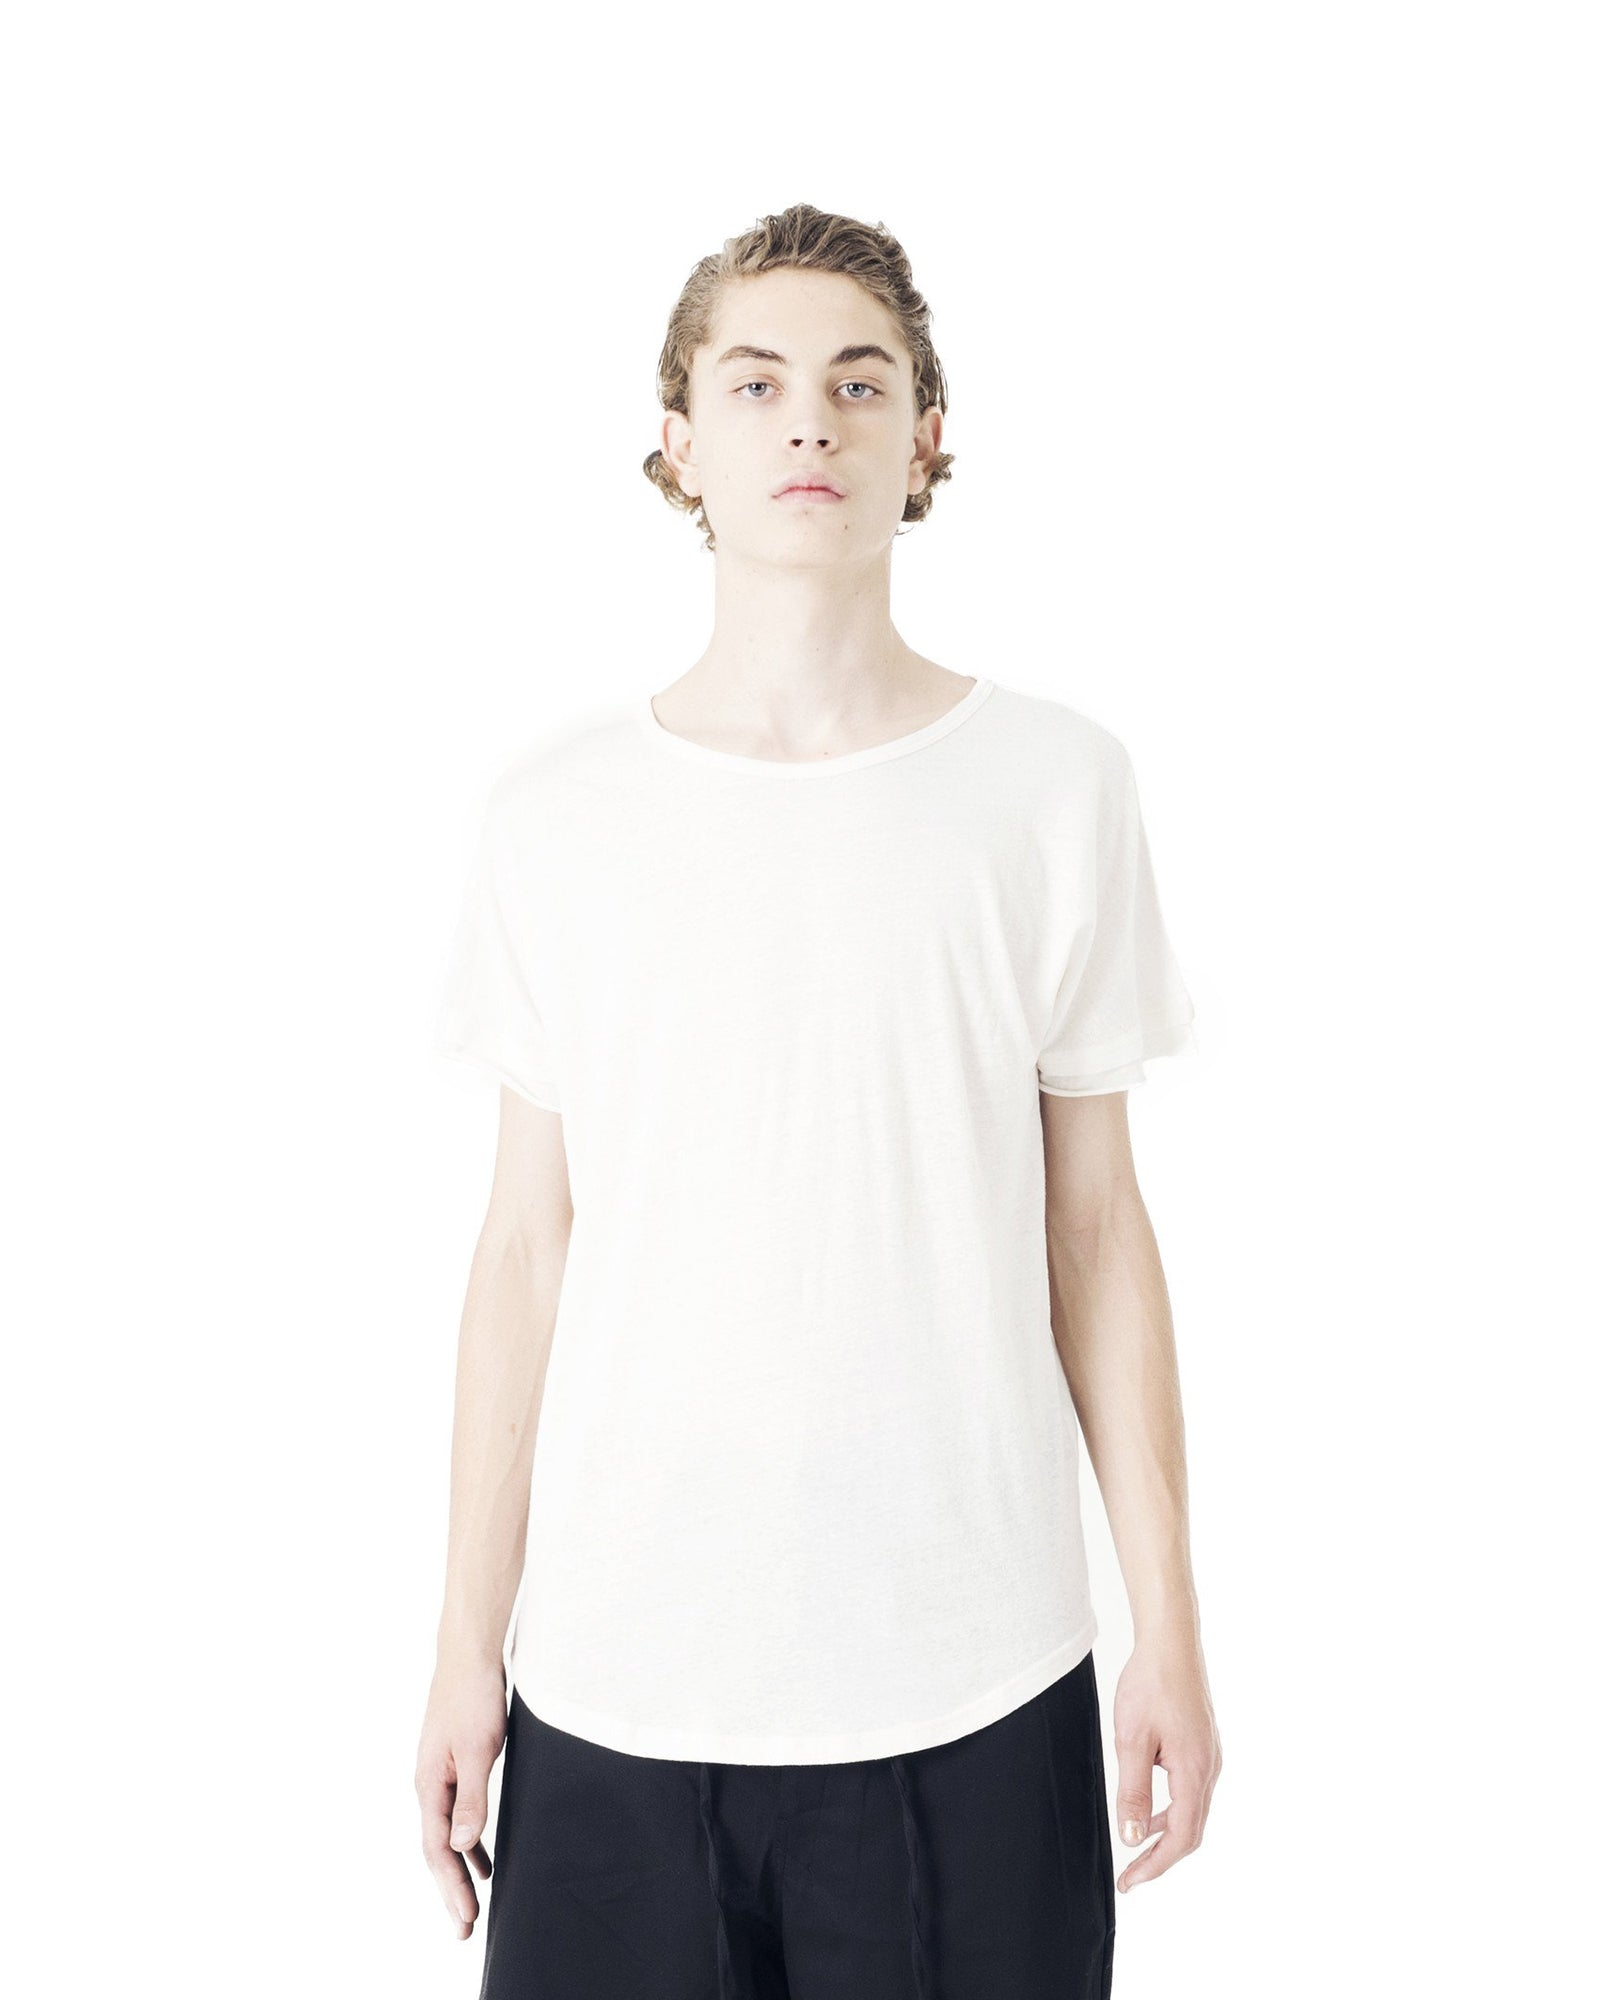 Salt T-Shirt - Off White